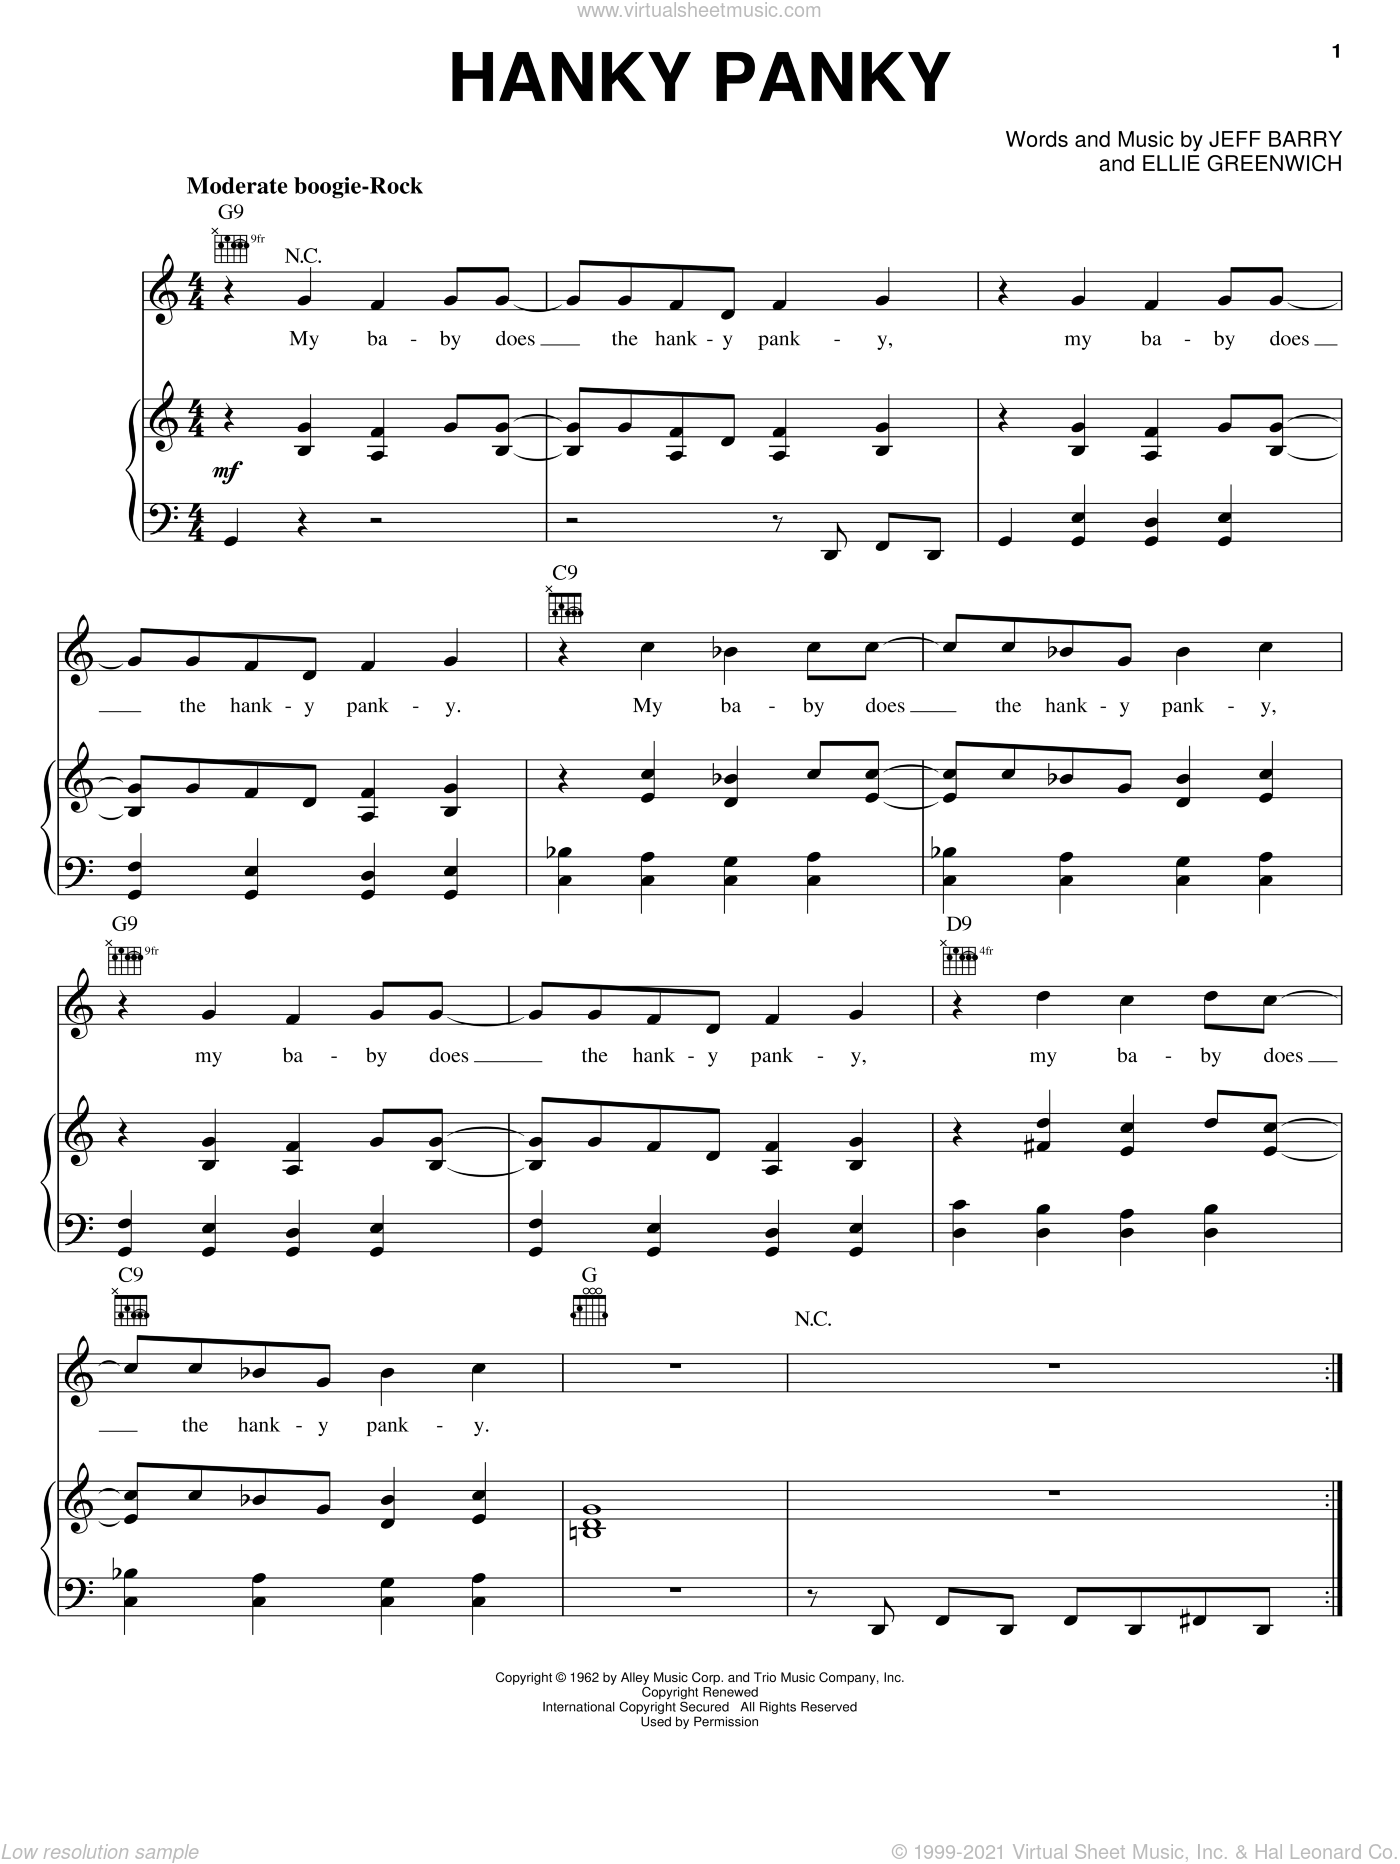 Hanky Panky sheet music for voice, piano or guitar by Tommy James & The Shondells, Ellie Greenwich and Jeff Barry. Score Image Preview.